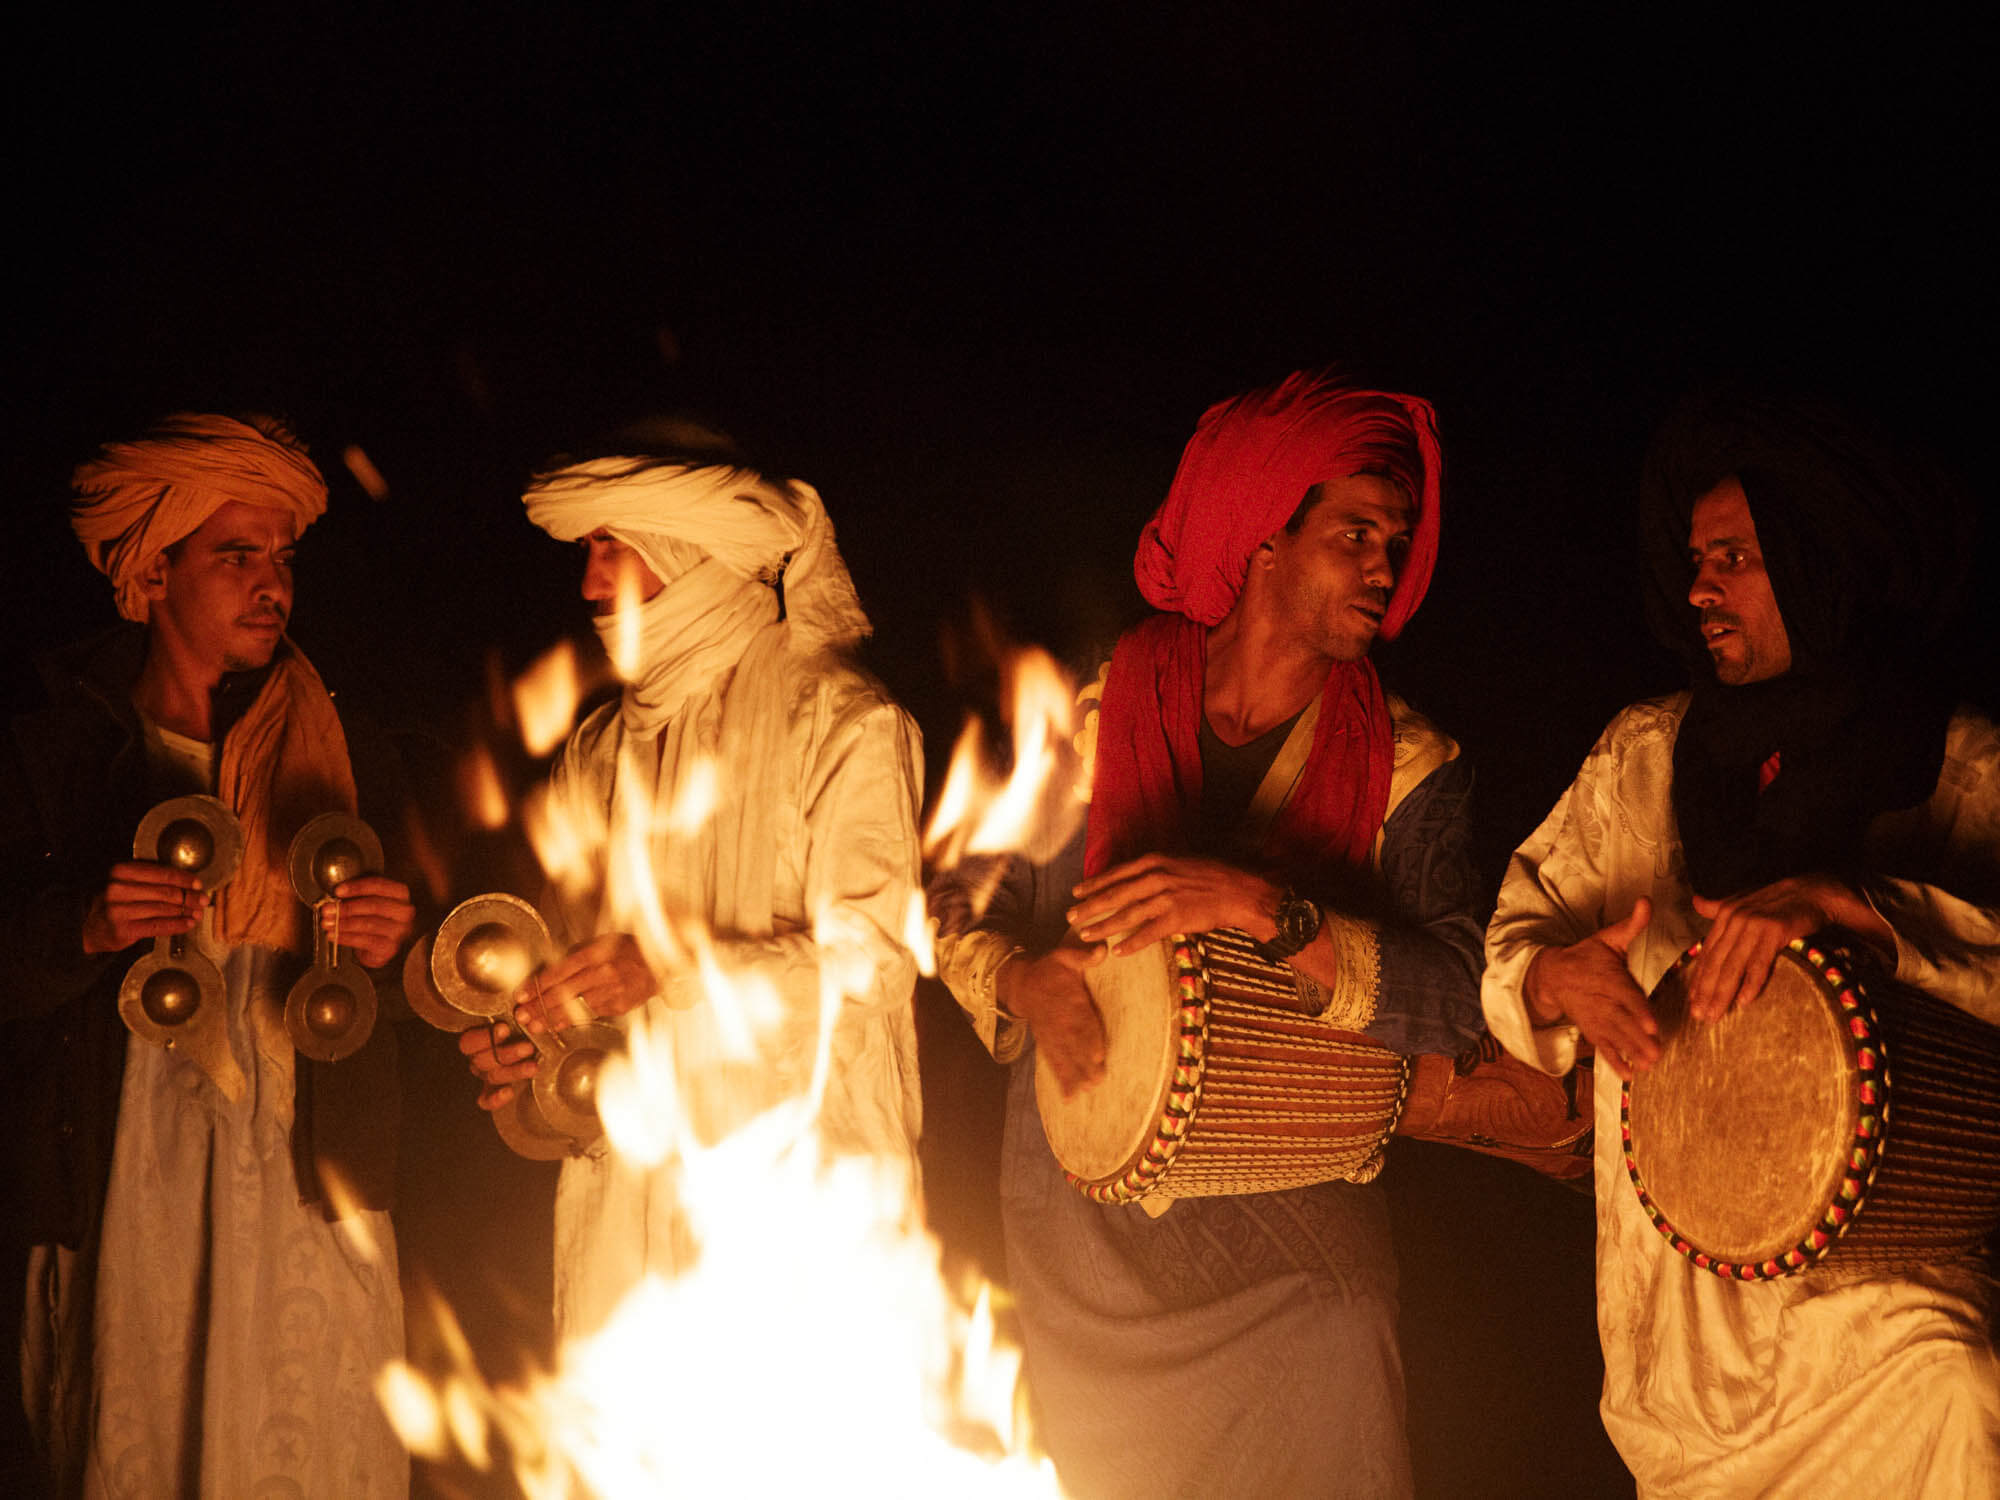 Moroccan Folk Musicians Playing Traditional Krakebs, iron castanets and Goat Skin Bongos.